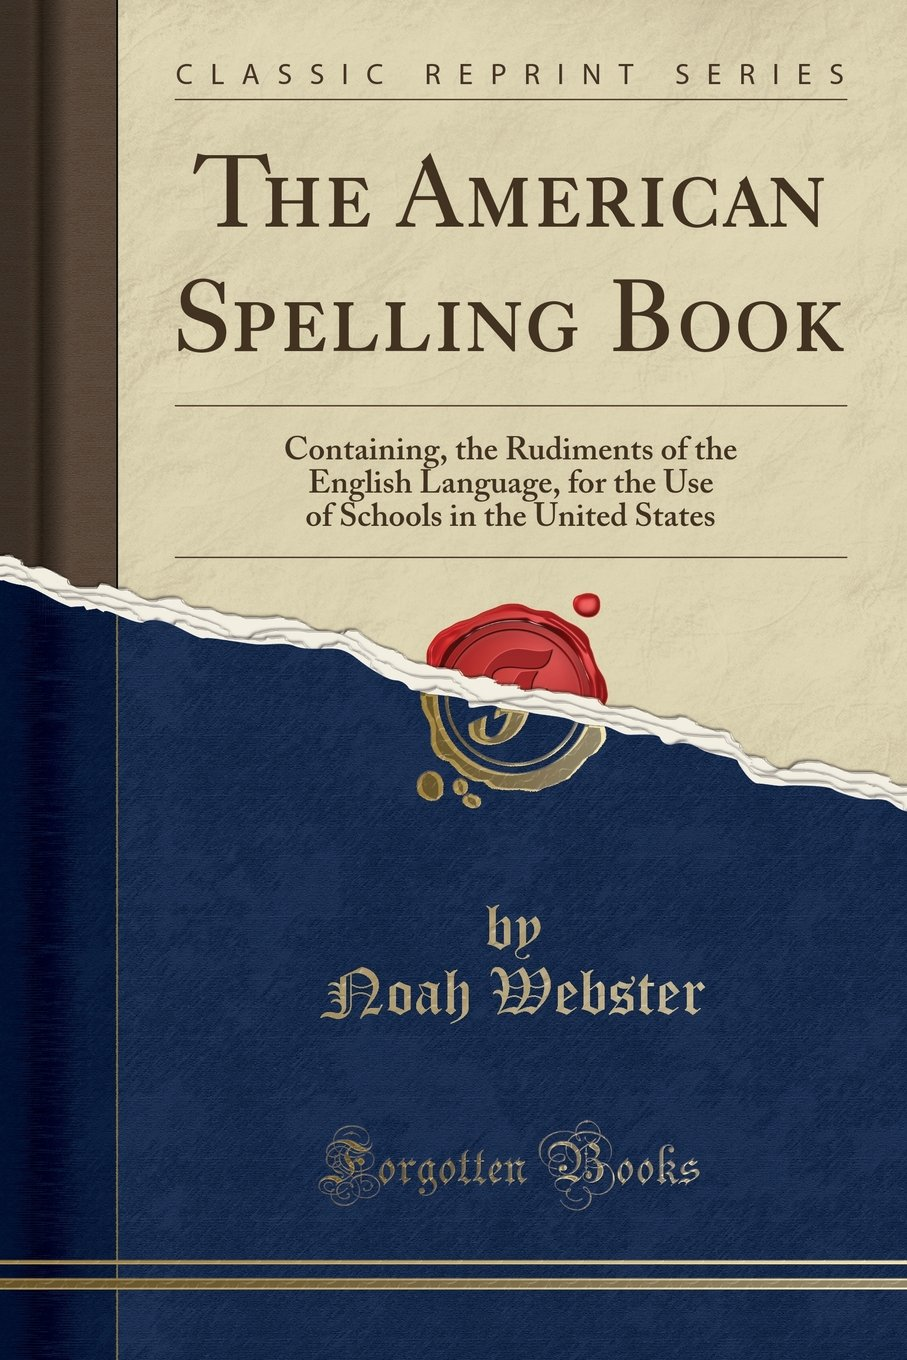 The American Spelling Book: Containing, the Rudiments of the English Language, for the Use of Schools in the United States (Classic Reprint) pdf